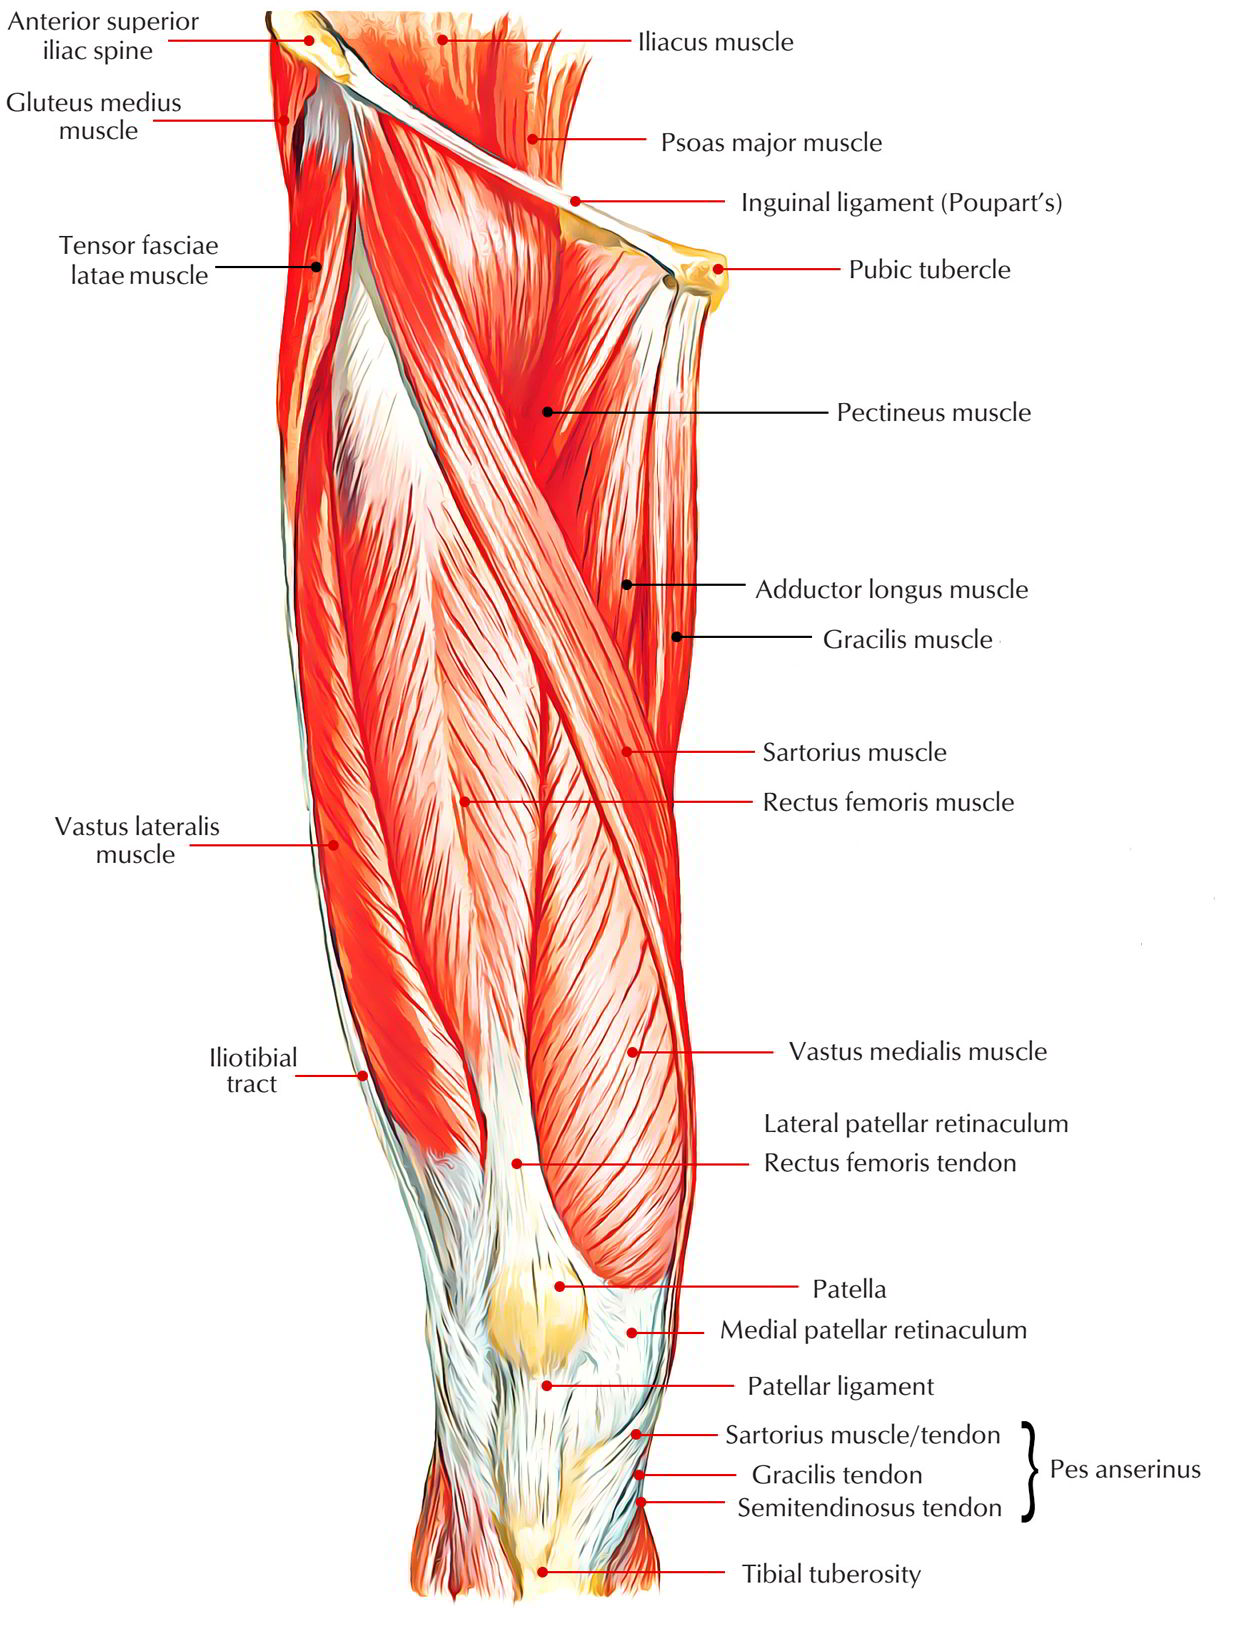 Leg Muscles: Muscles of the Anterior Compartment of the Leg